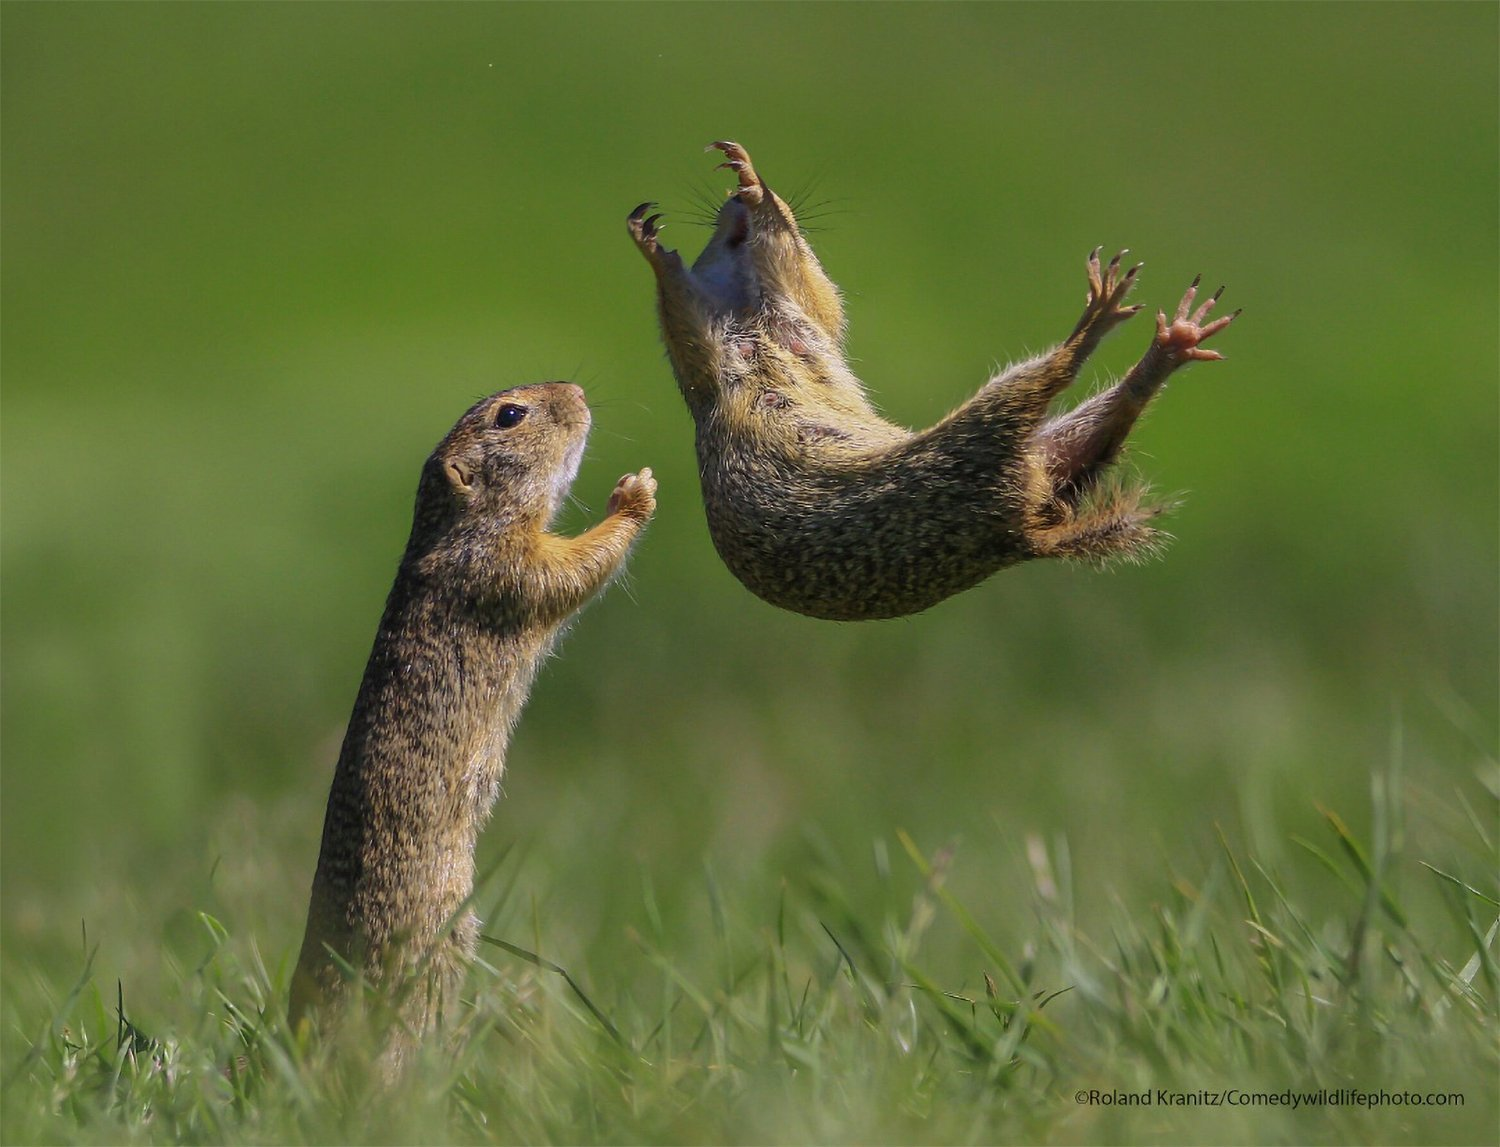 19 Hilarious Finalists in the 2021 Comedy Wildlife Photo Awards